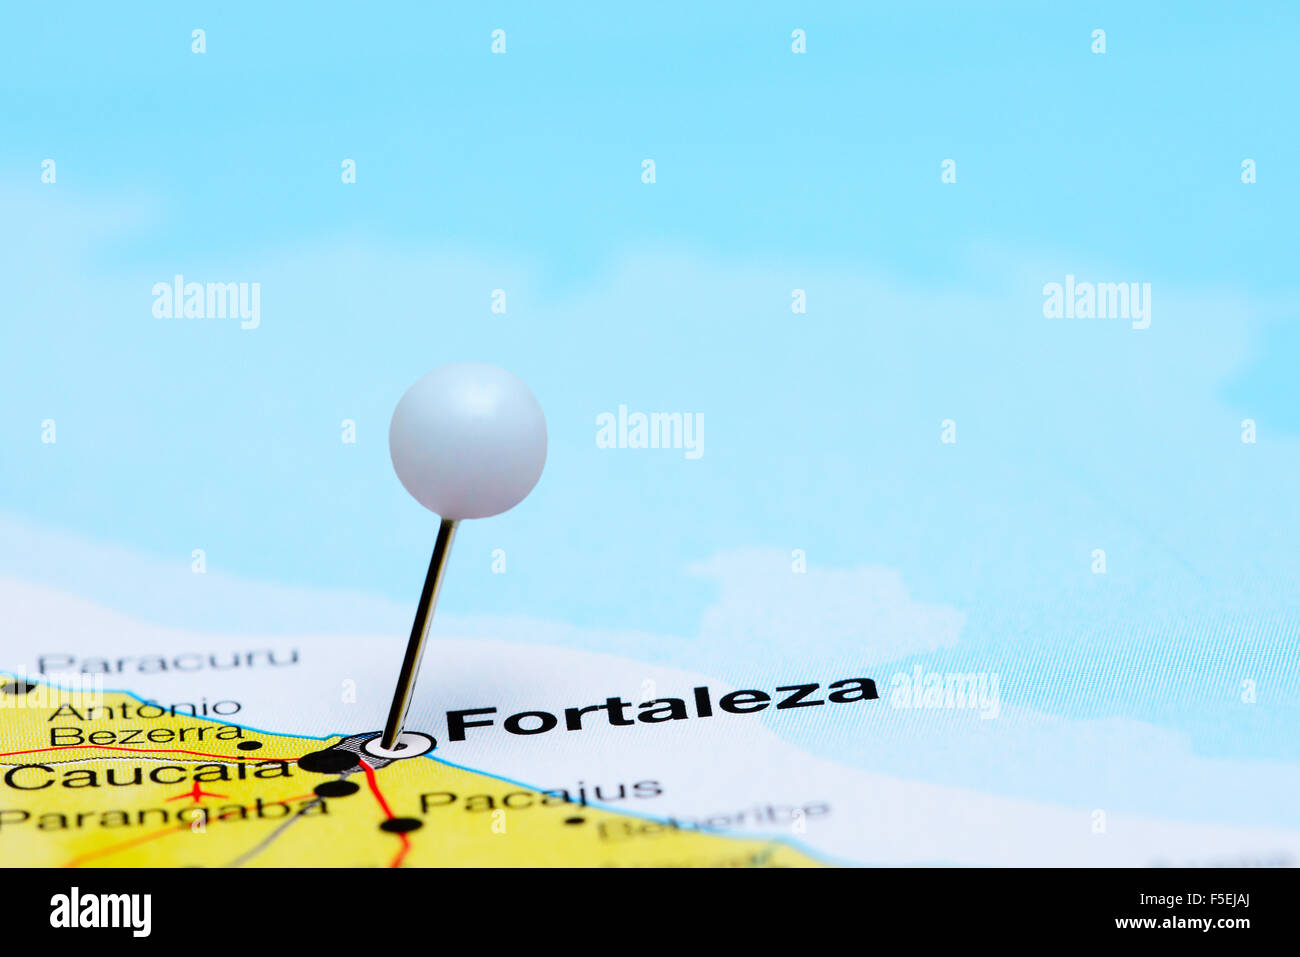 Fortaleza pinned on a map of Brazil Stock Photo Royalty Free Image